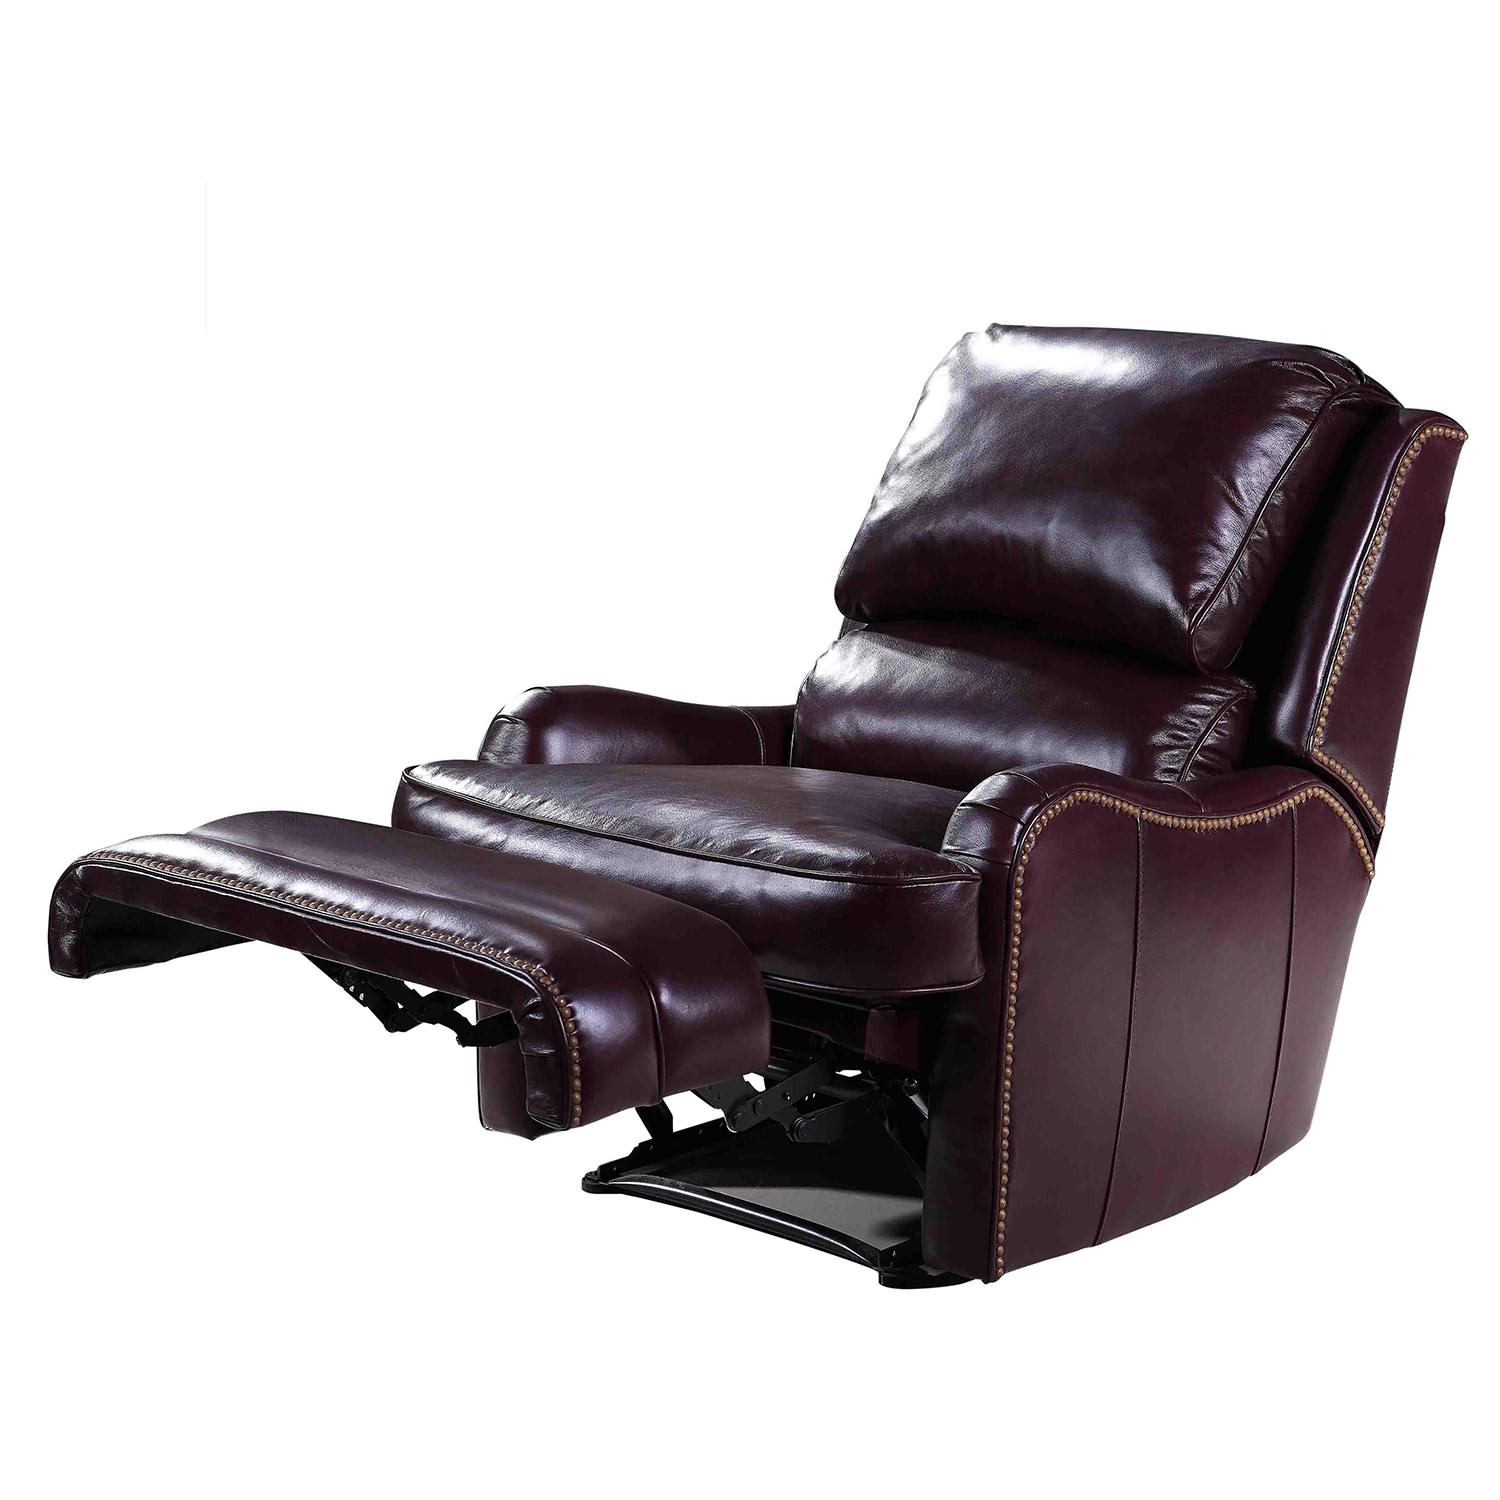 Function sofa|leather sofa|reclining sofa|Recliner